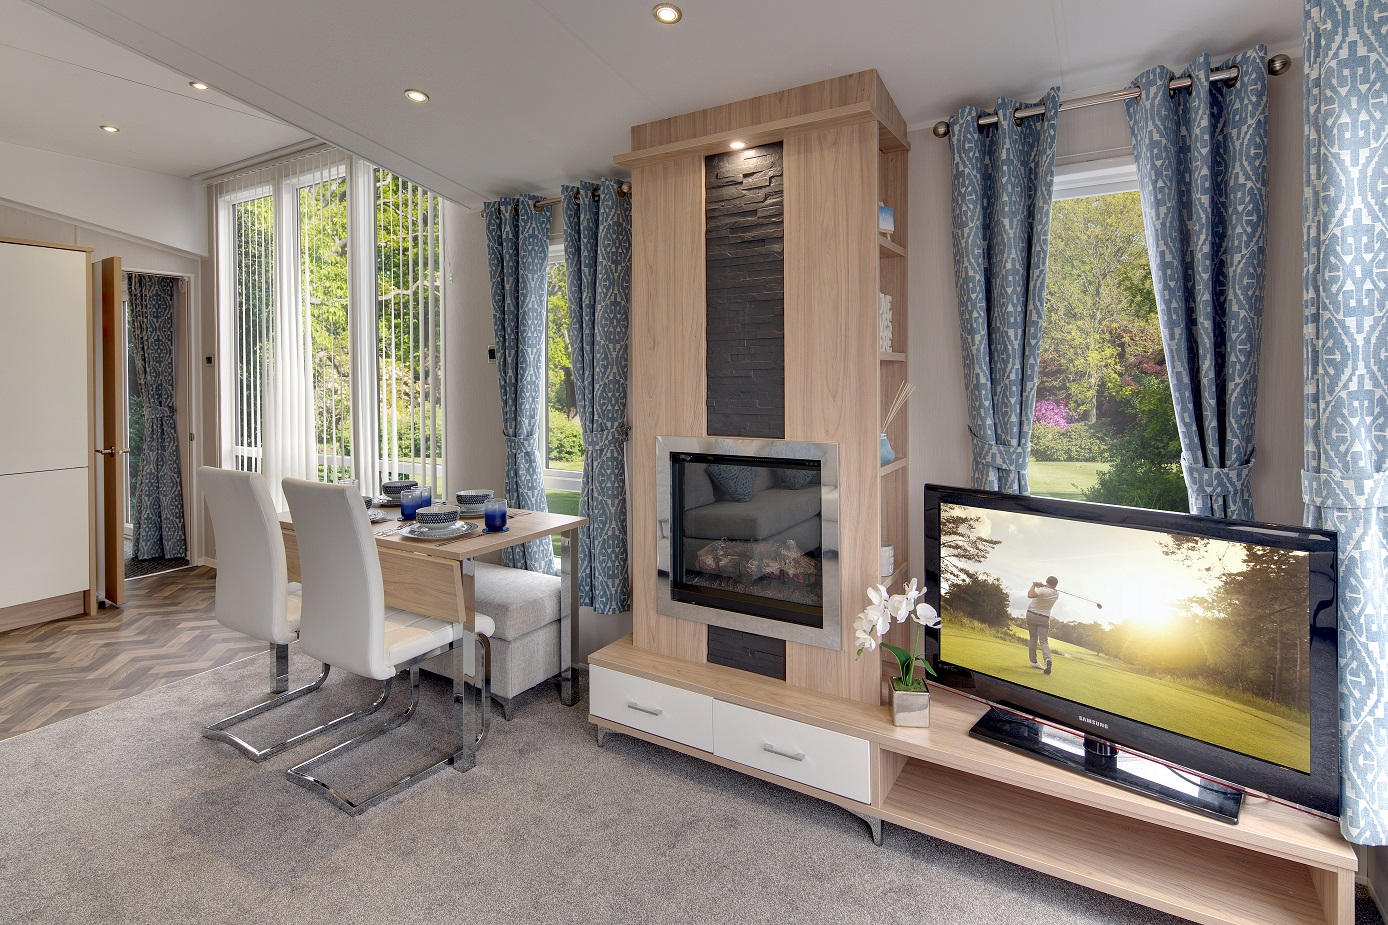 Willerby Linear available at ideal caravans Lodge specification Image 1